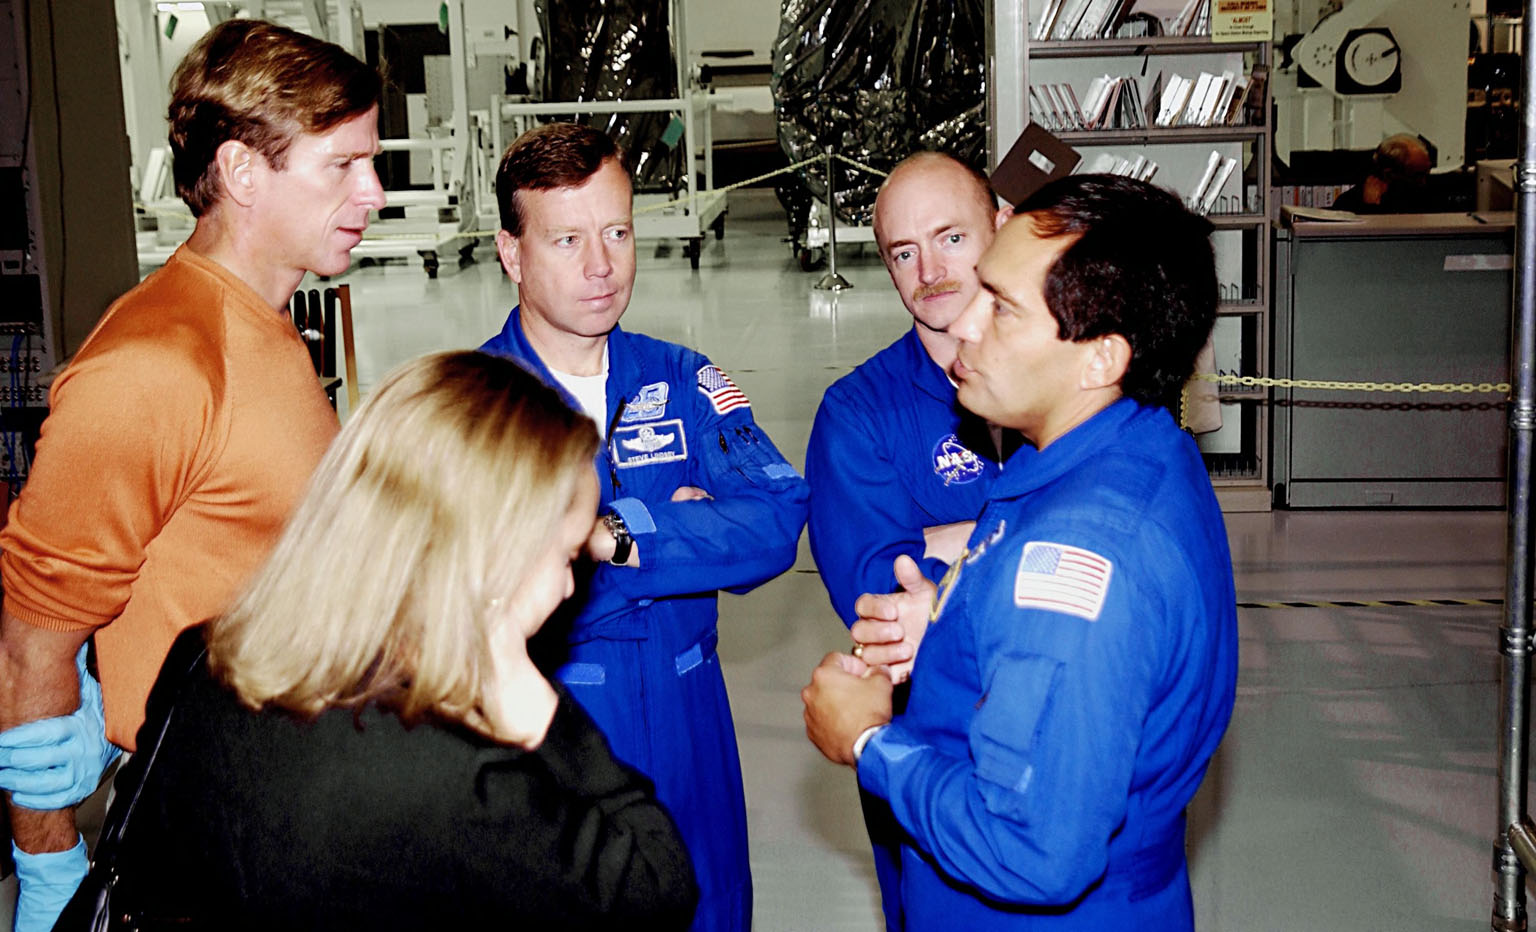 KENNEDY SPACE CENTER, FLA. - The mission STS-119 crew talk about the mission during a Crew Equipment Interface Test activity. From the left are Mission Specialist Michael Gernhardt, Commander Steven Lindsey, Pilot Mark Kelly and Mission Carlos Noriega. The mission will deliver the fourth and final set of U.S. solar arrays along with the fourth starboard truss segment, the S6 truss. Mission STS-119 is scheduled to launch in January 2004.